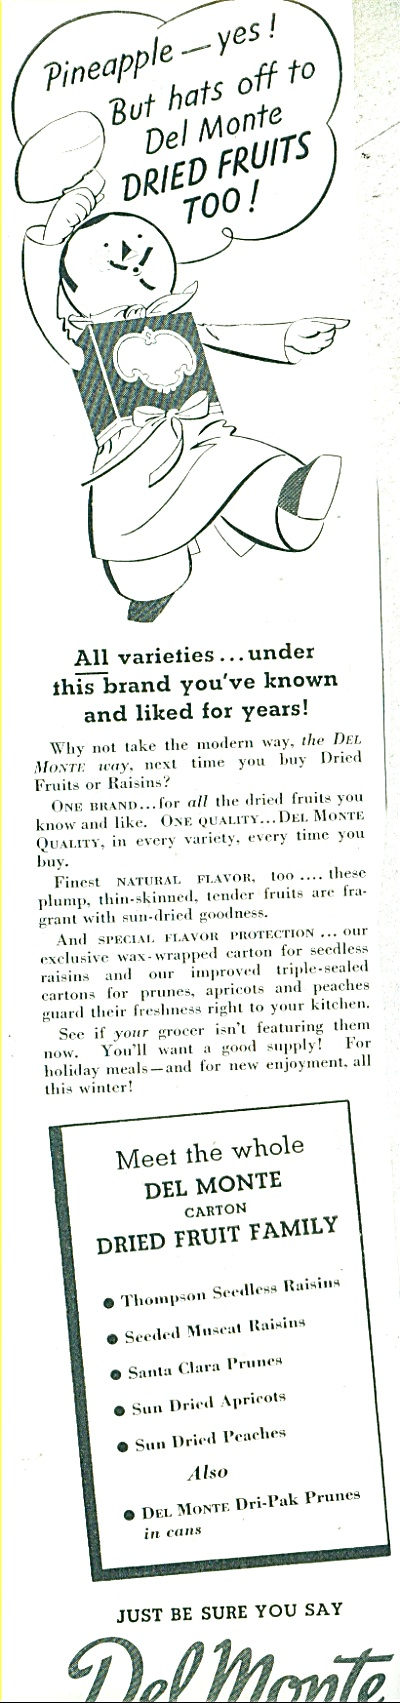 1937 DEL MONTE FOODS Pineapple Cartoon AD (Image1)